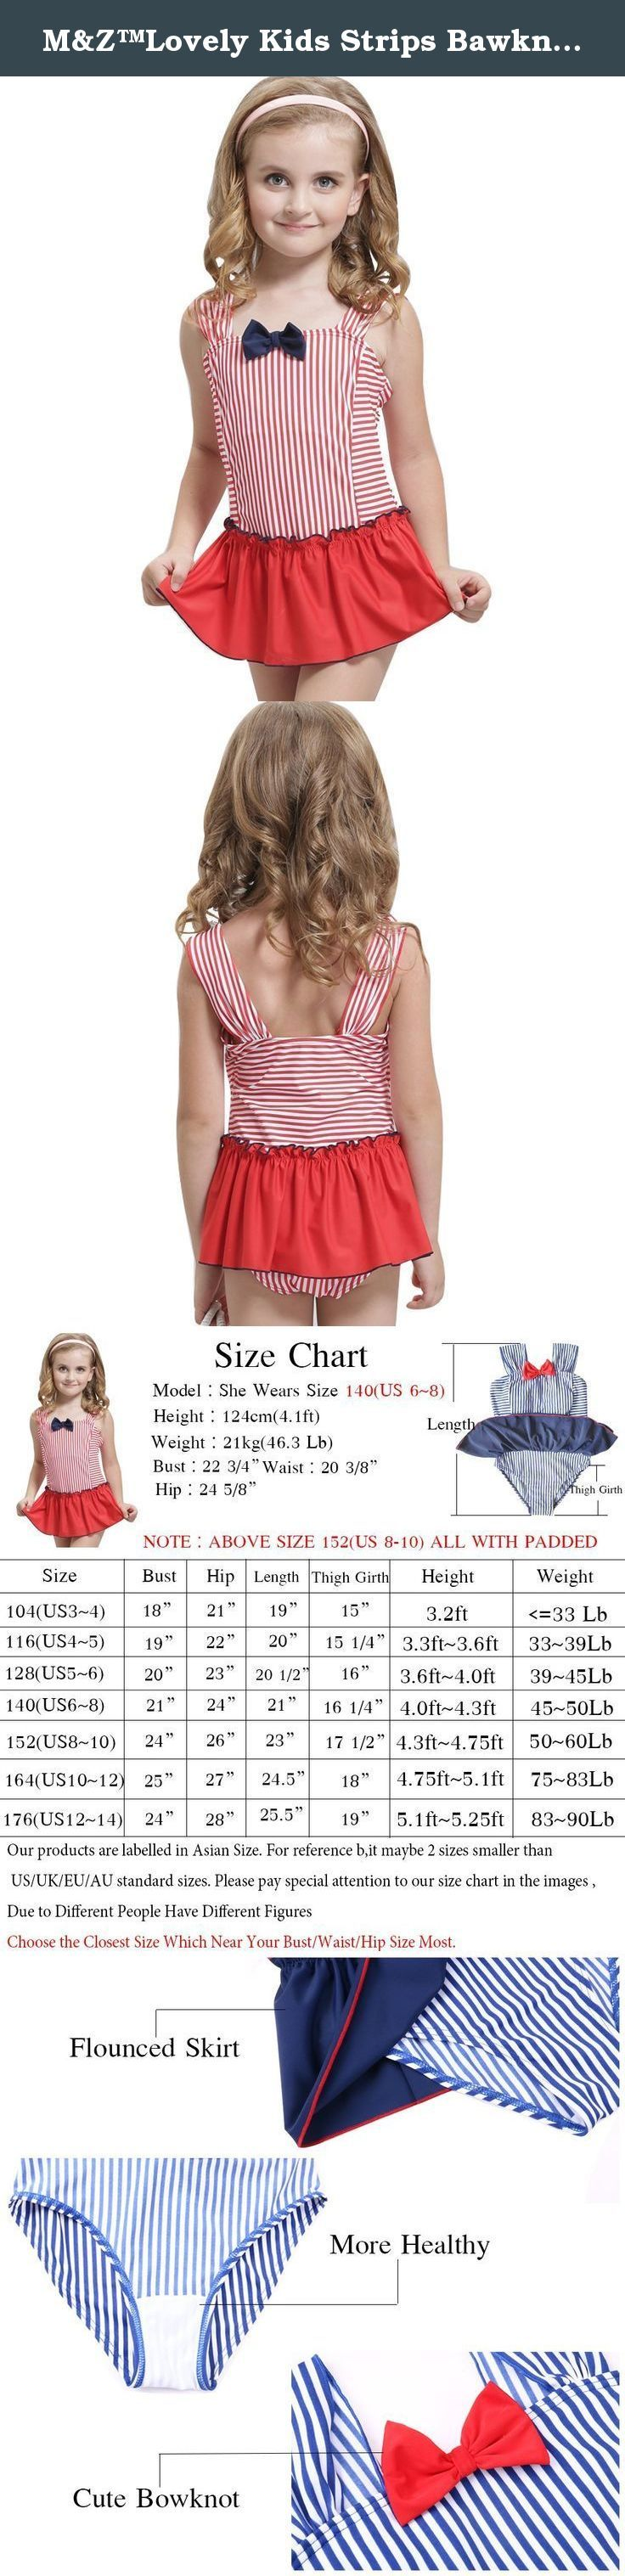 M&Z™Lovely Kids Strips Bawknot Princess Swimsuits Bathing Suit for Girls. Item Specifics * To see more similar products, please click the brand name M&Z or browse in our store COTTEE * Mini separate skirts with stealth flat shorts * Special strip sling dress swimsuit design * Available colors: Blue/ Red * Material: Polyamide,Elasthan * Item Care Instruction:Cold Water Wash, Do Not Bleach * Occasion: summer swimwear, beachwear Measurements * 104(US 3-4) : Height 3.2ft;Weight under 33Lb *...